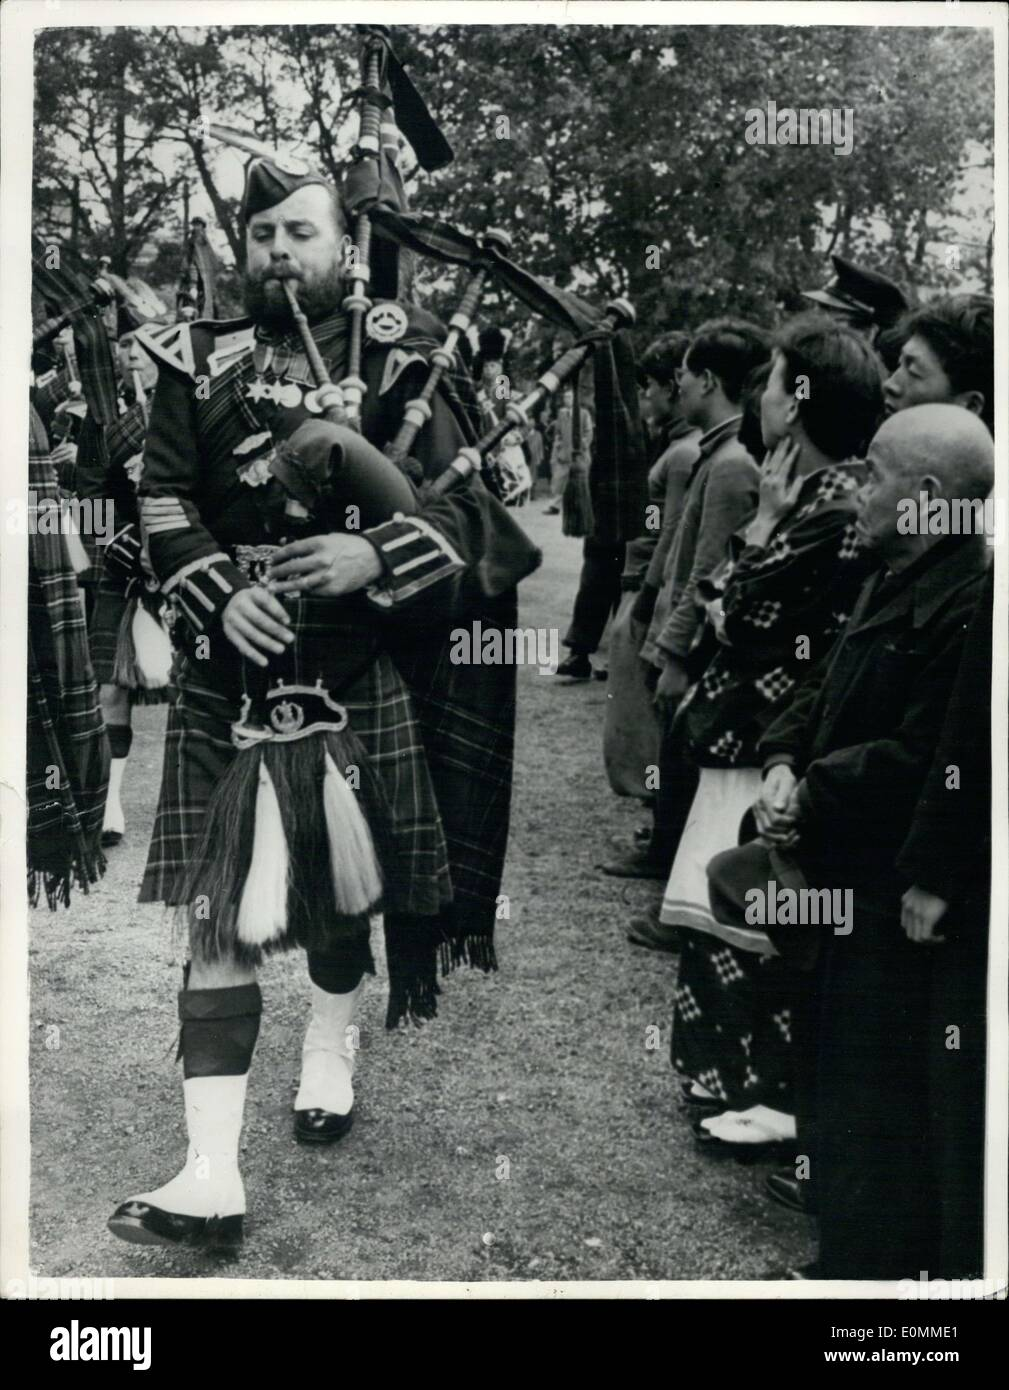 Oct. 31, 1955 - Highlanders make Tokyo debut: The bearded bagpiper and his colleagues become the focus of public attention as they make their debut at Tokyo's Hibiya Park recently. The awestruck little old man and the kimonced woman were among hundred of Tokyoite who were seeing the famous highlanders in colorful kilts and the bag pies for the first time in their life. Although the bagpipers are familiar on the streets of Hongkong and other British territories, this was the first time that the Highlanders performed in public in the Japanese capital - Stock Image